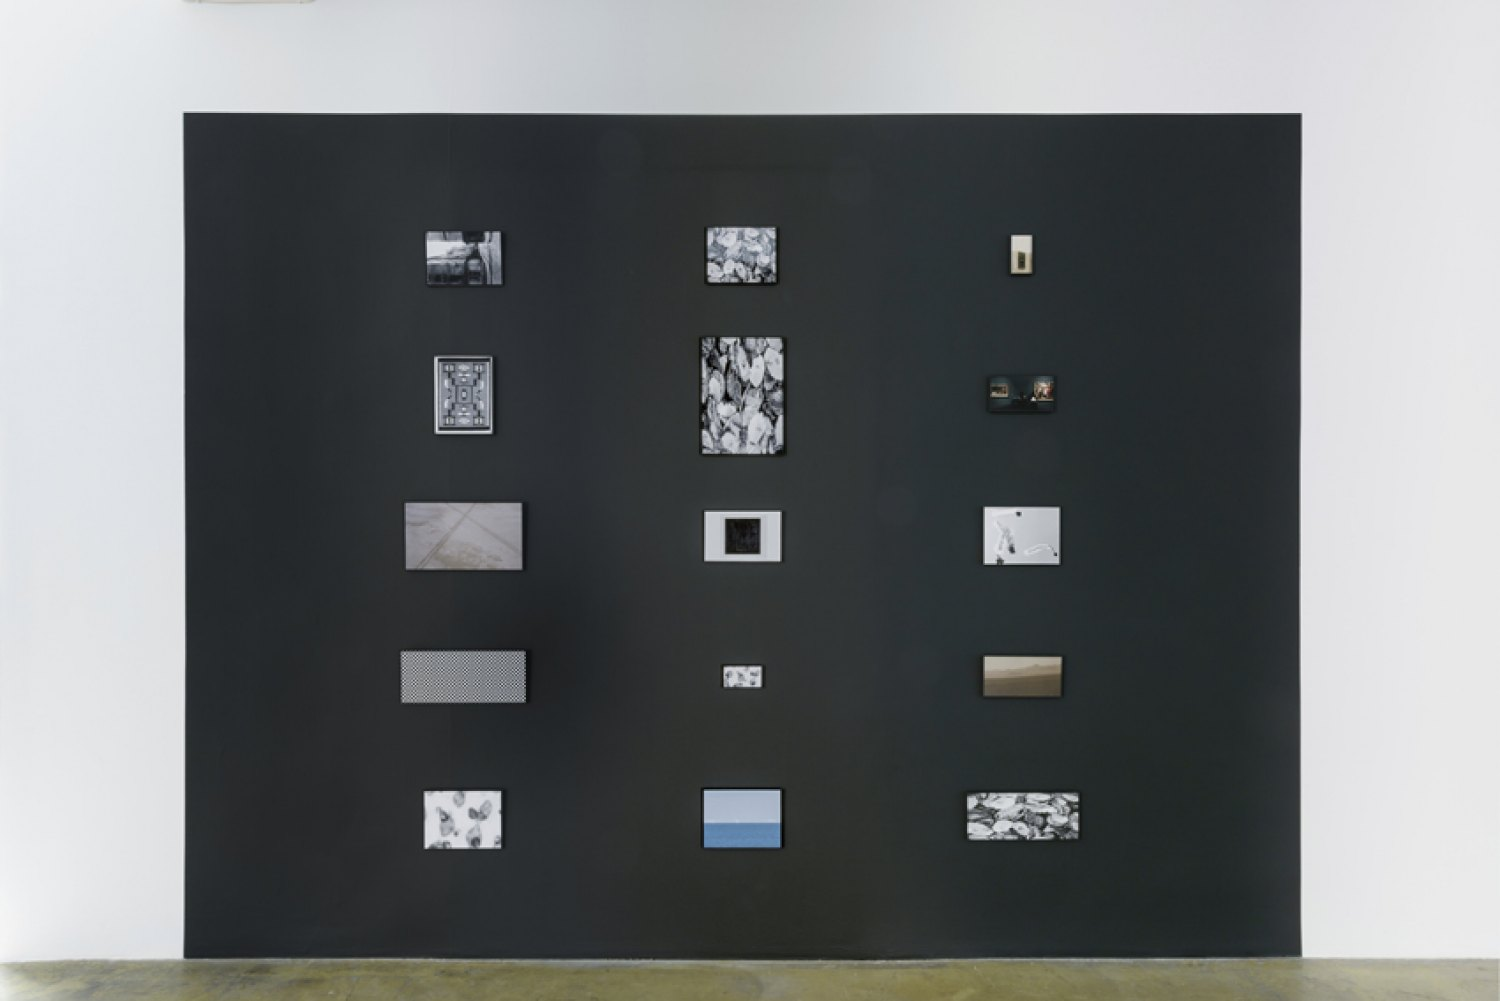 Sean Snyder Aspect Ratio (Vanishing Point), 2015-2016 15 color and b/w archival pigment prints on matte paper, 1 cm aluminium frames, installed on wall painted RAL 9017, 3 m high x 4 m wide